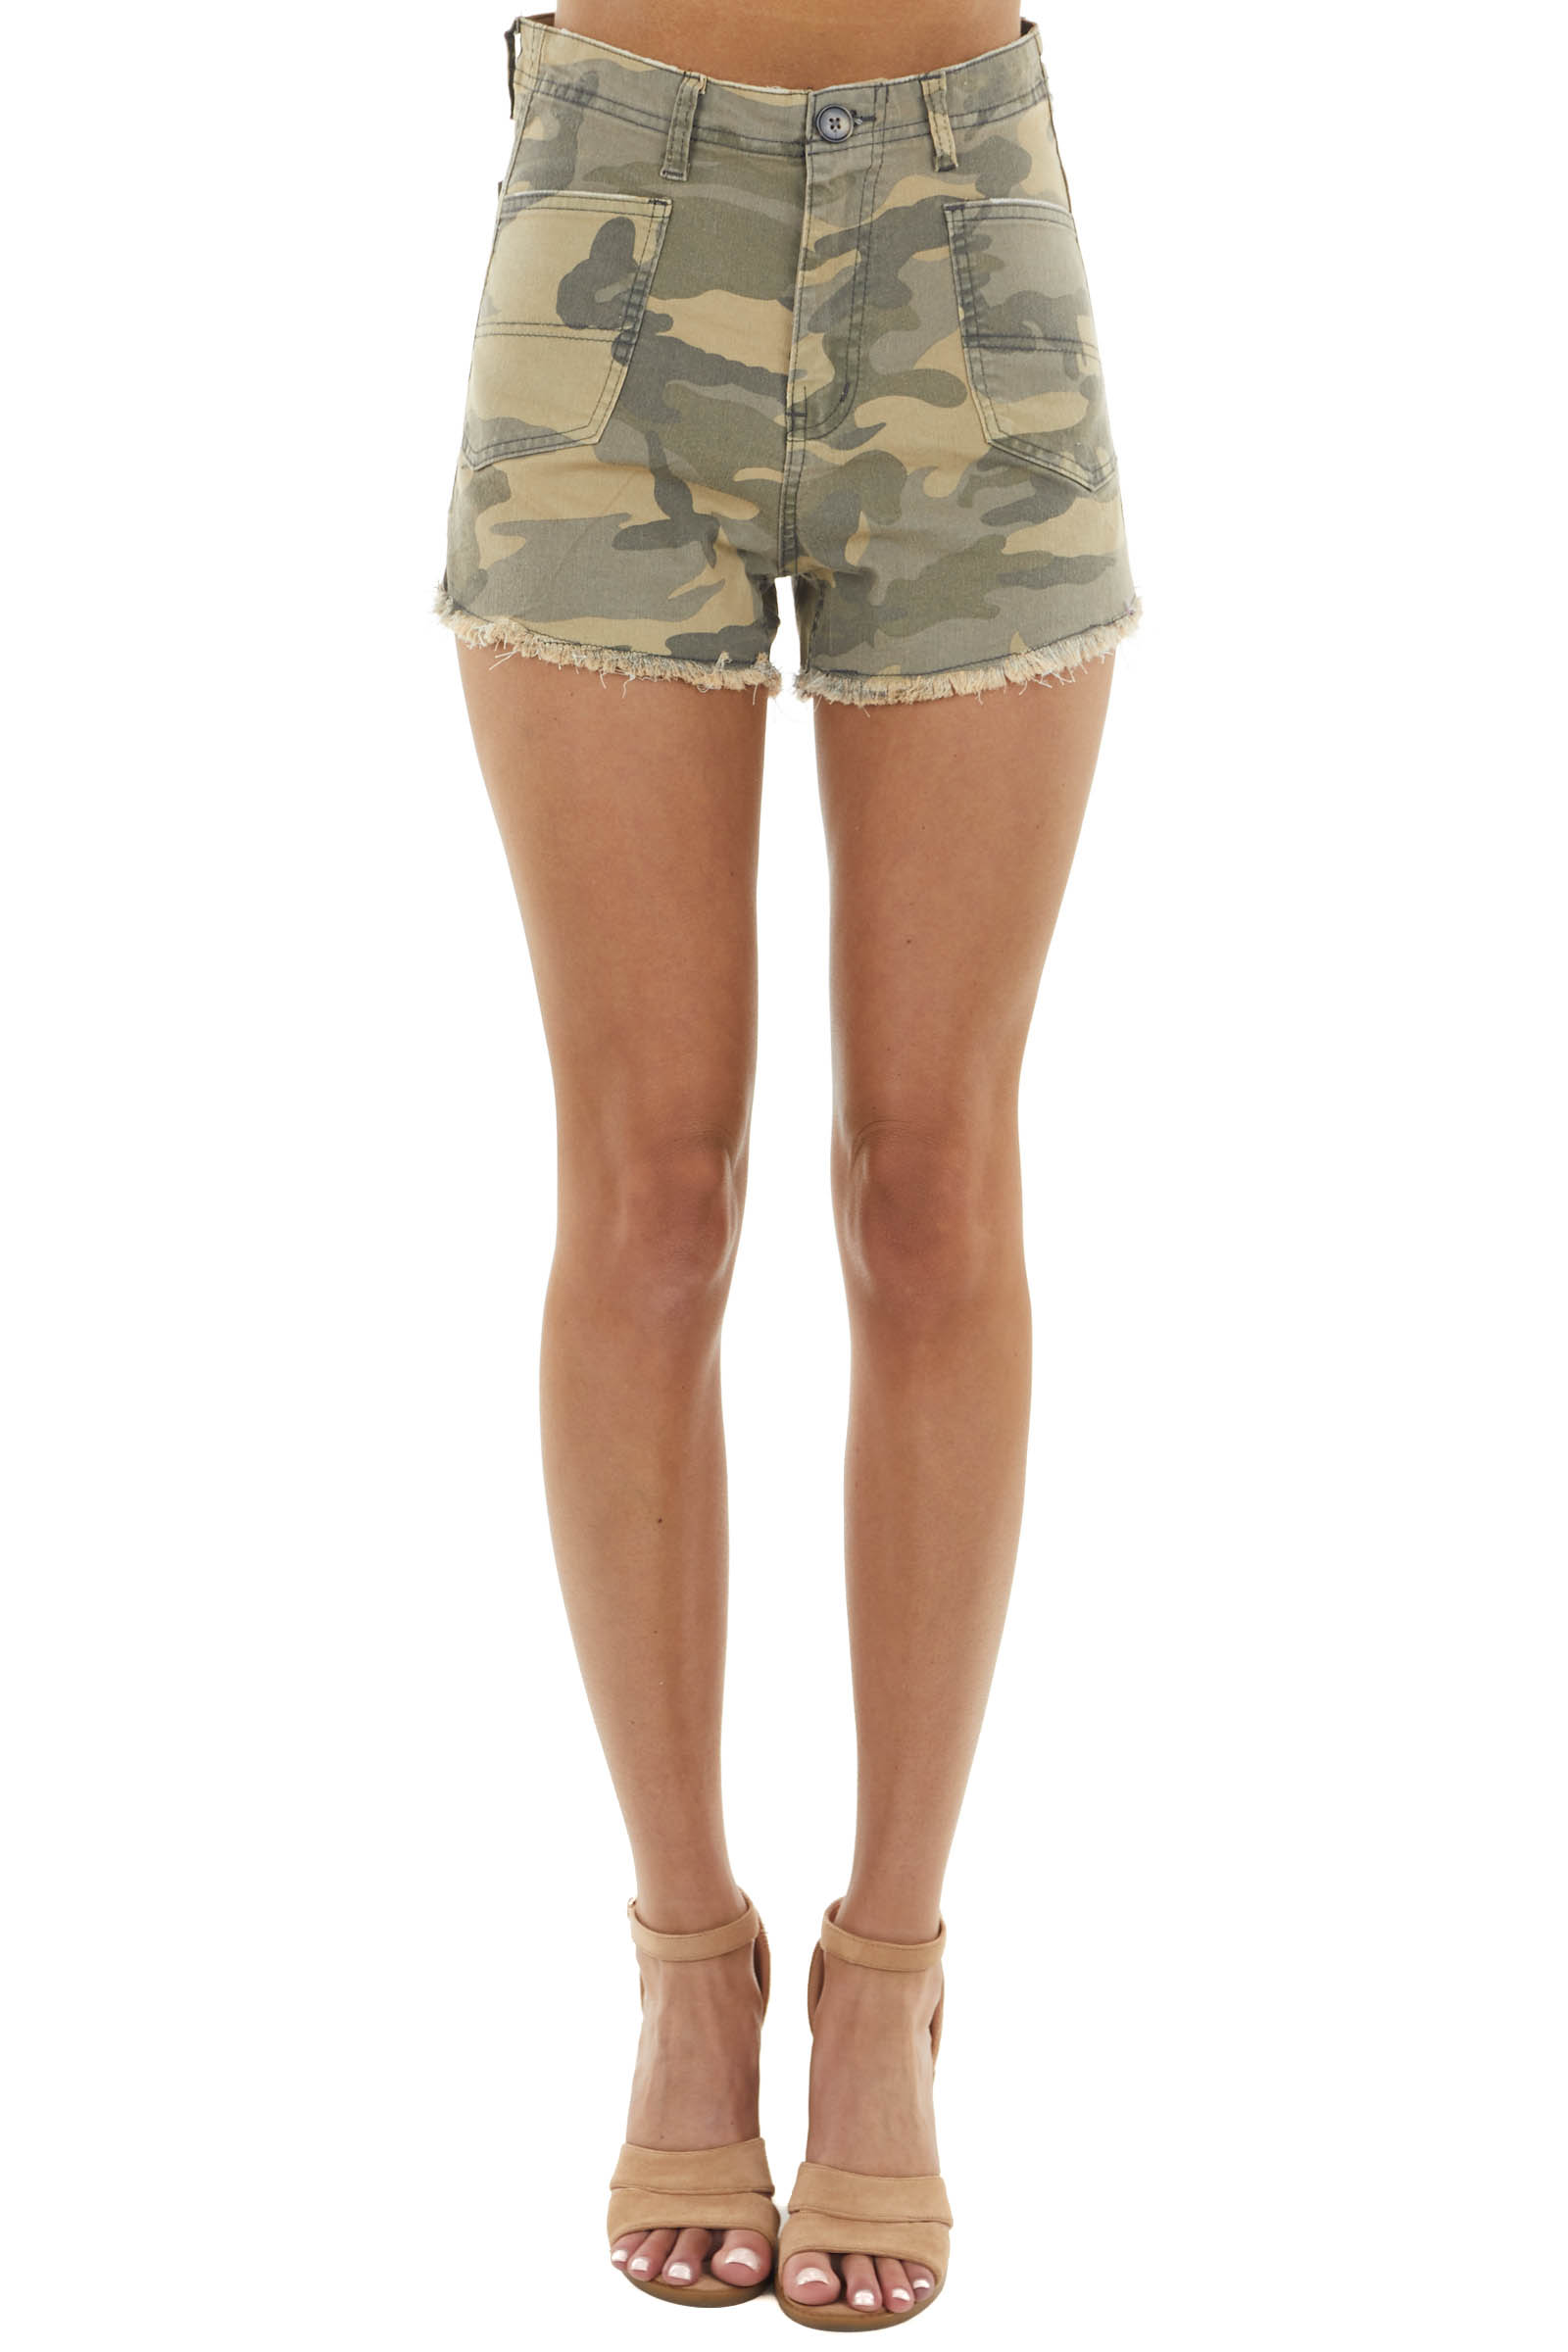 Pistachio Camo High Rise Jean Shorts with Frayed Hem